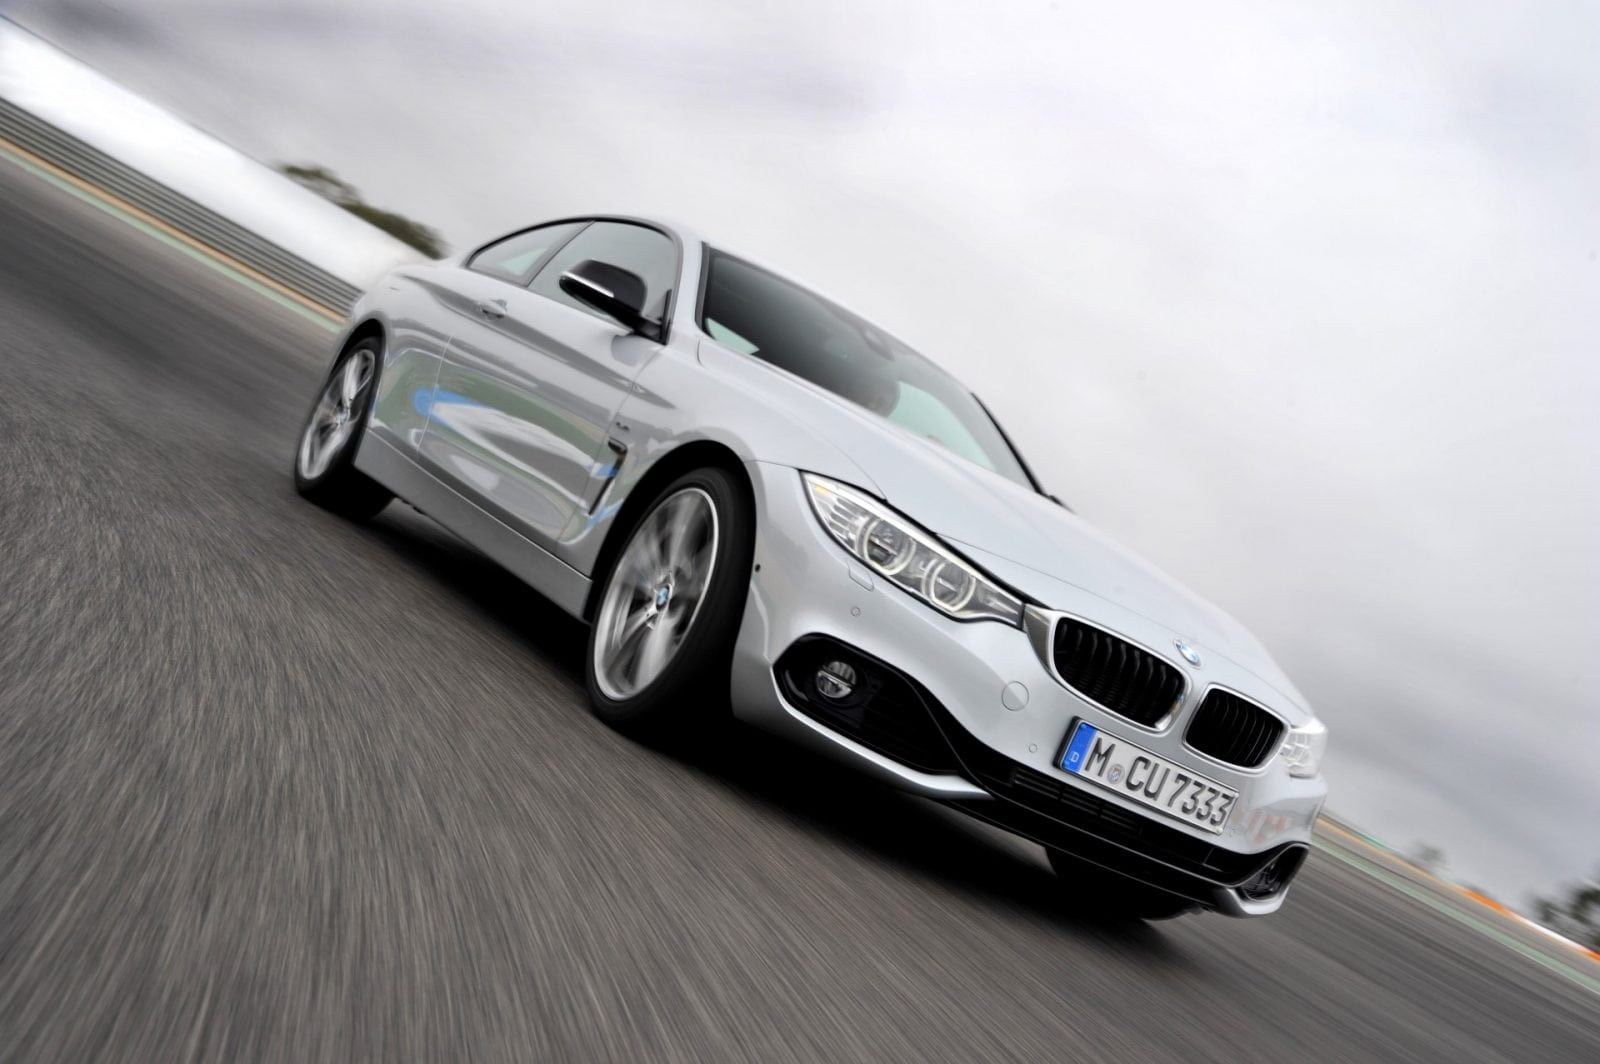 BMW 4 Series F32 435i Review